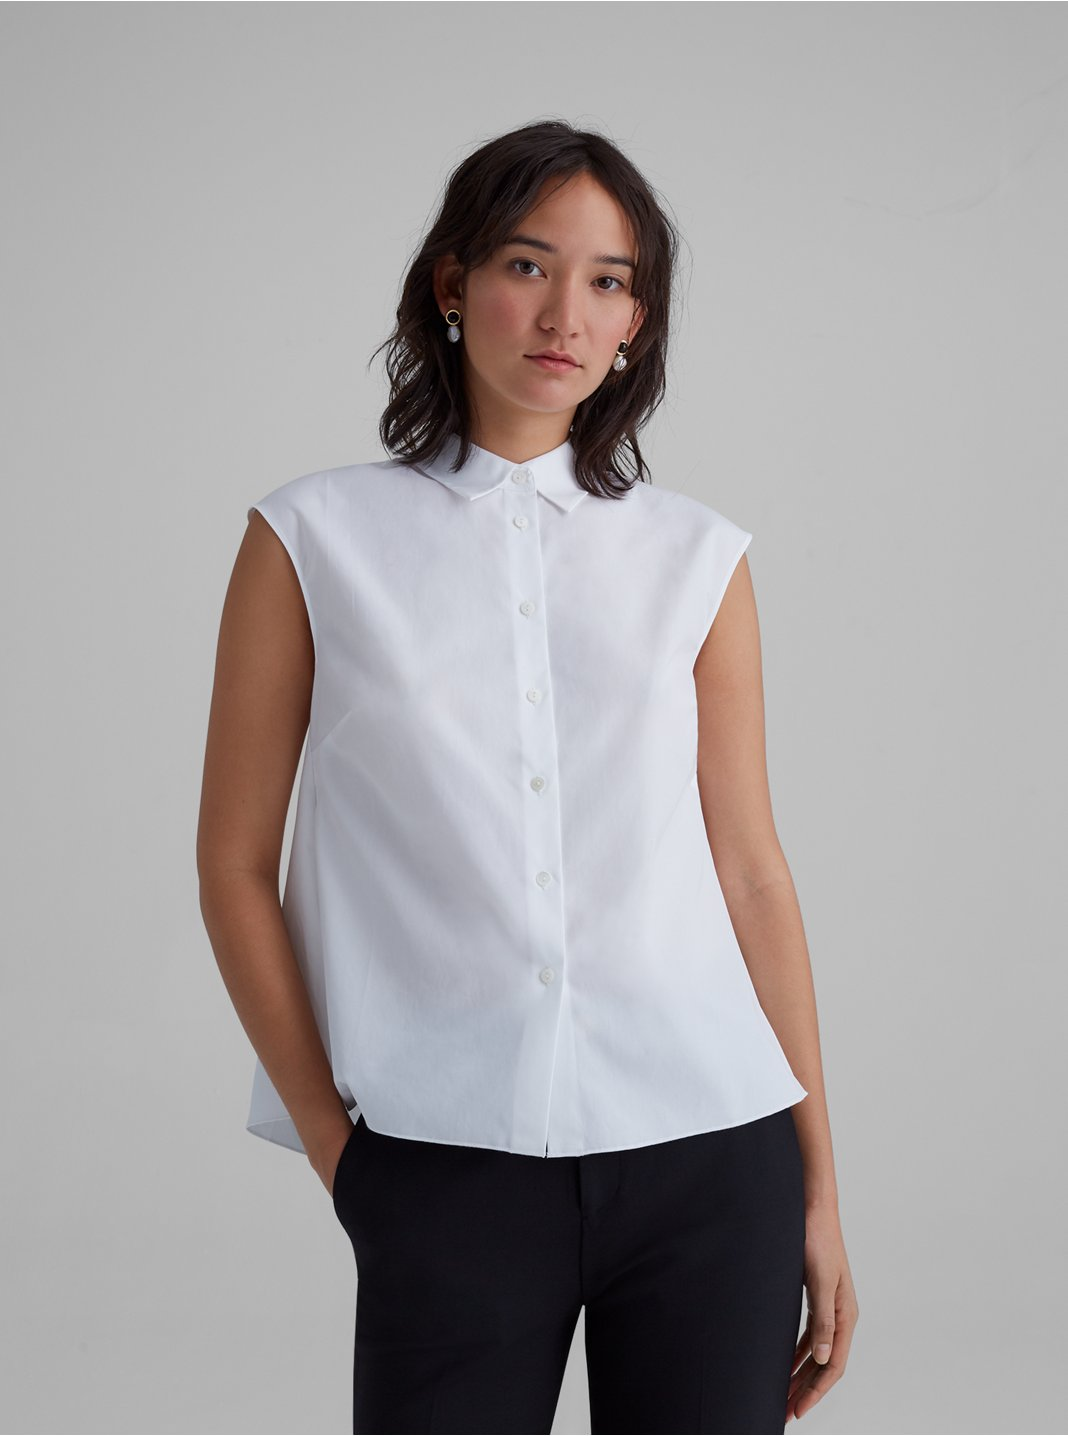 Easy Sleeveless Shirt